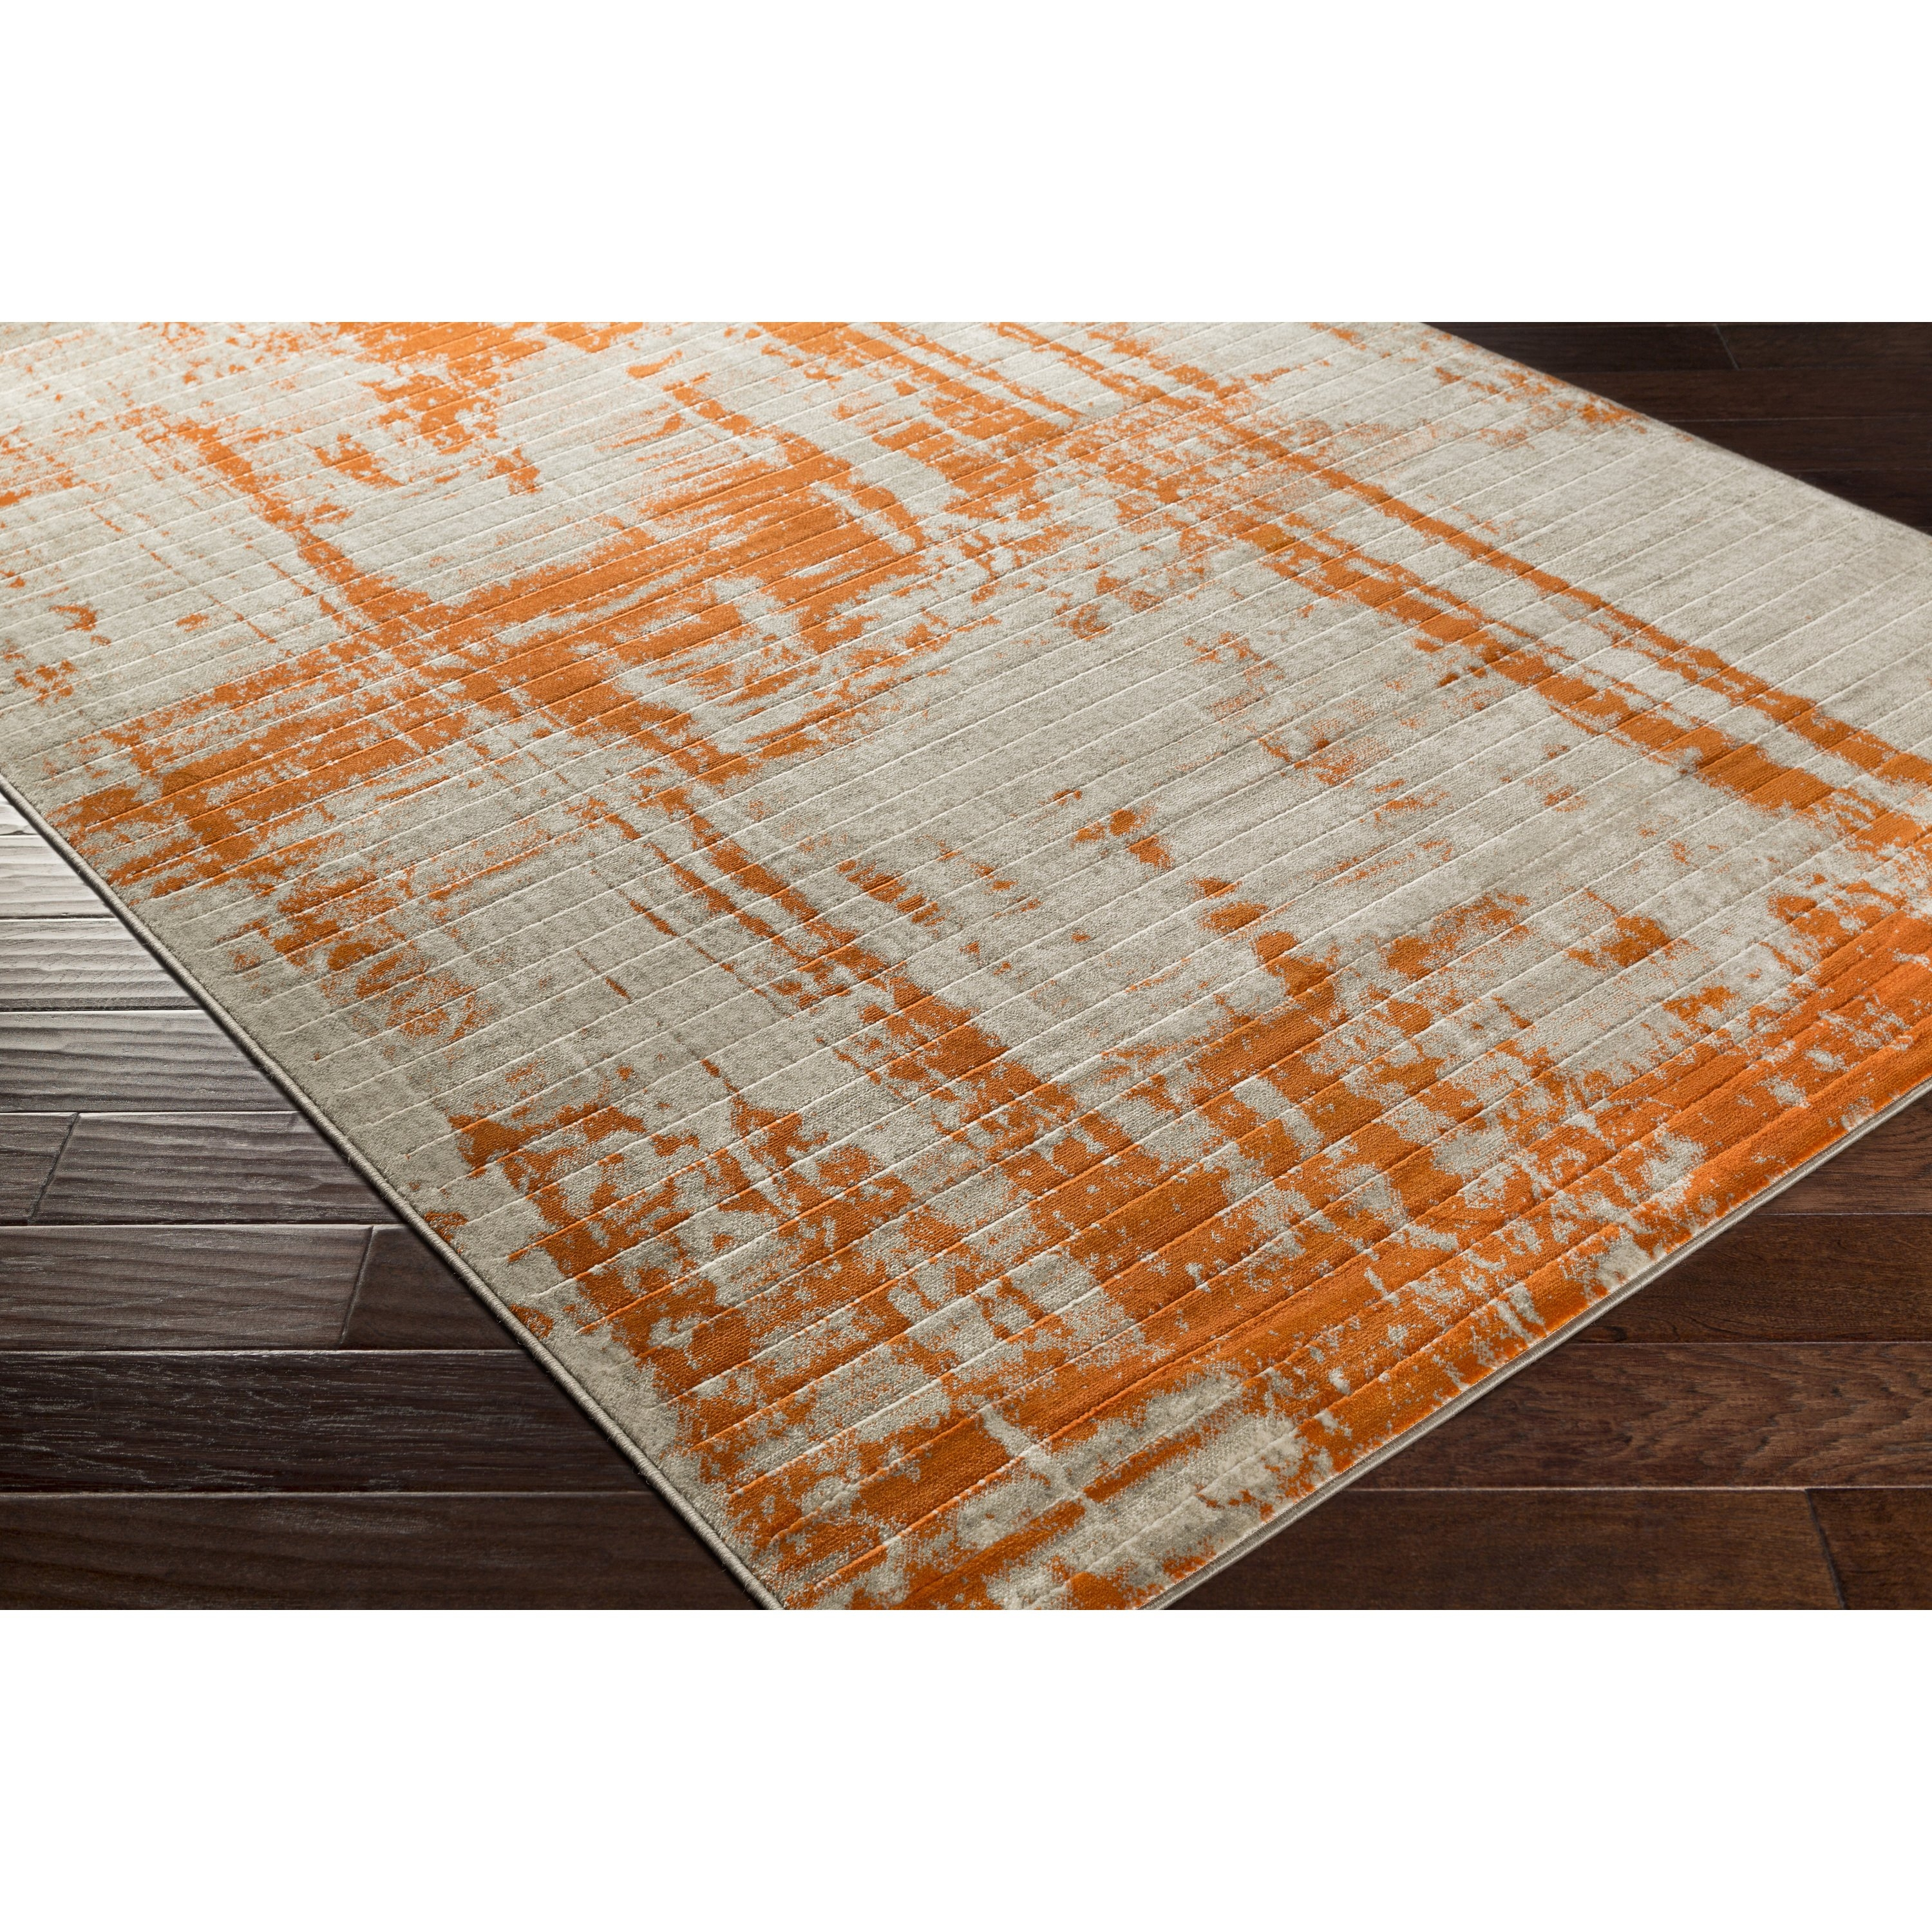 Area Rugs Astounding Gray And Orange Area Rug Yellow And Orange In Orange Floor Rugs (Image 2 of 15)